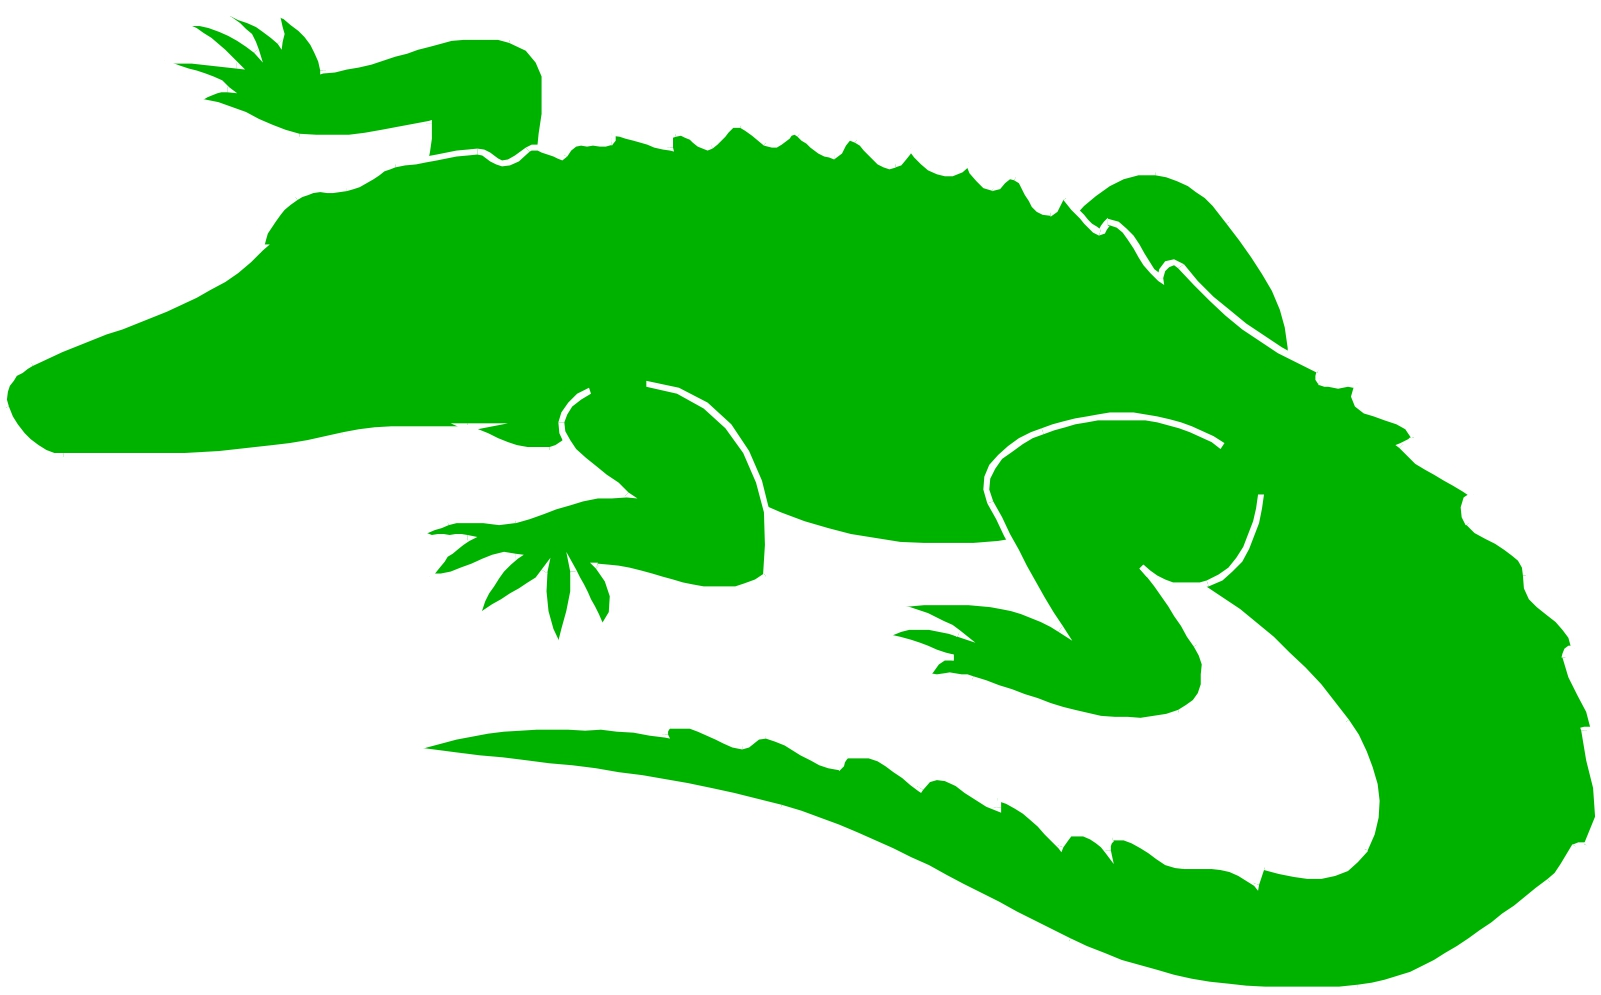 Alligator clipart easy. Collection of free download